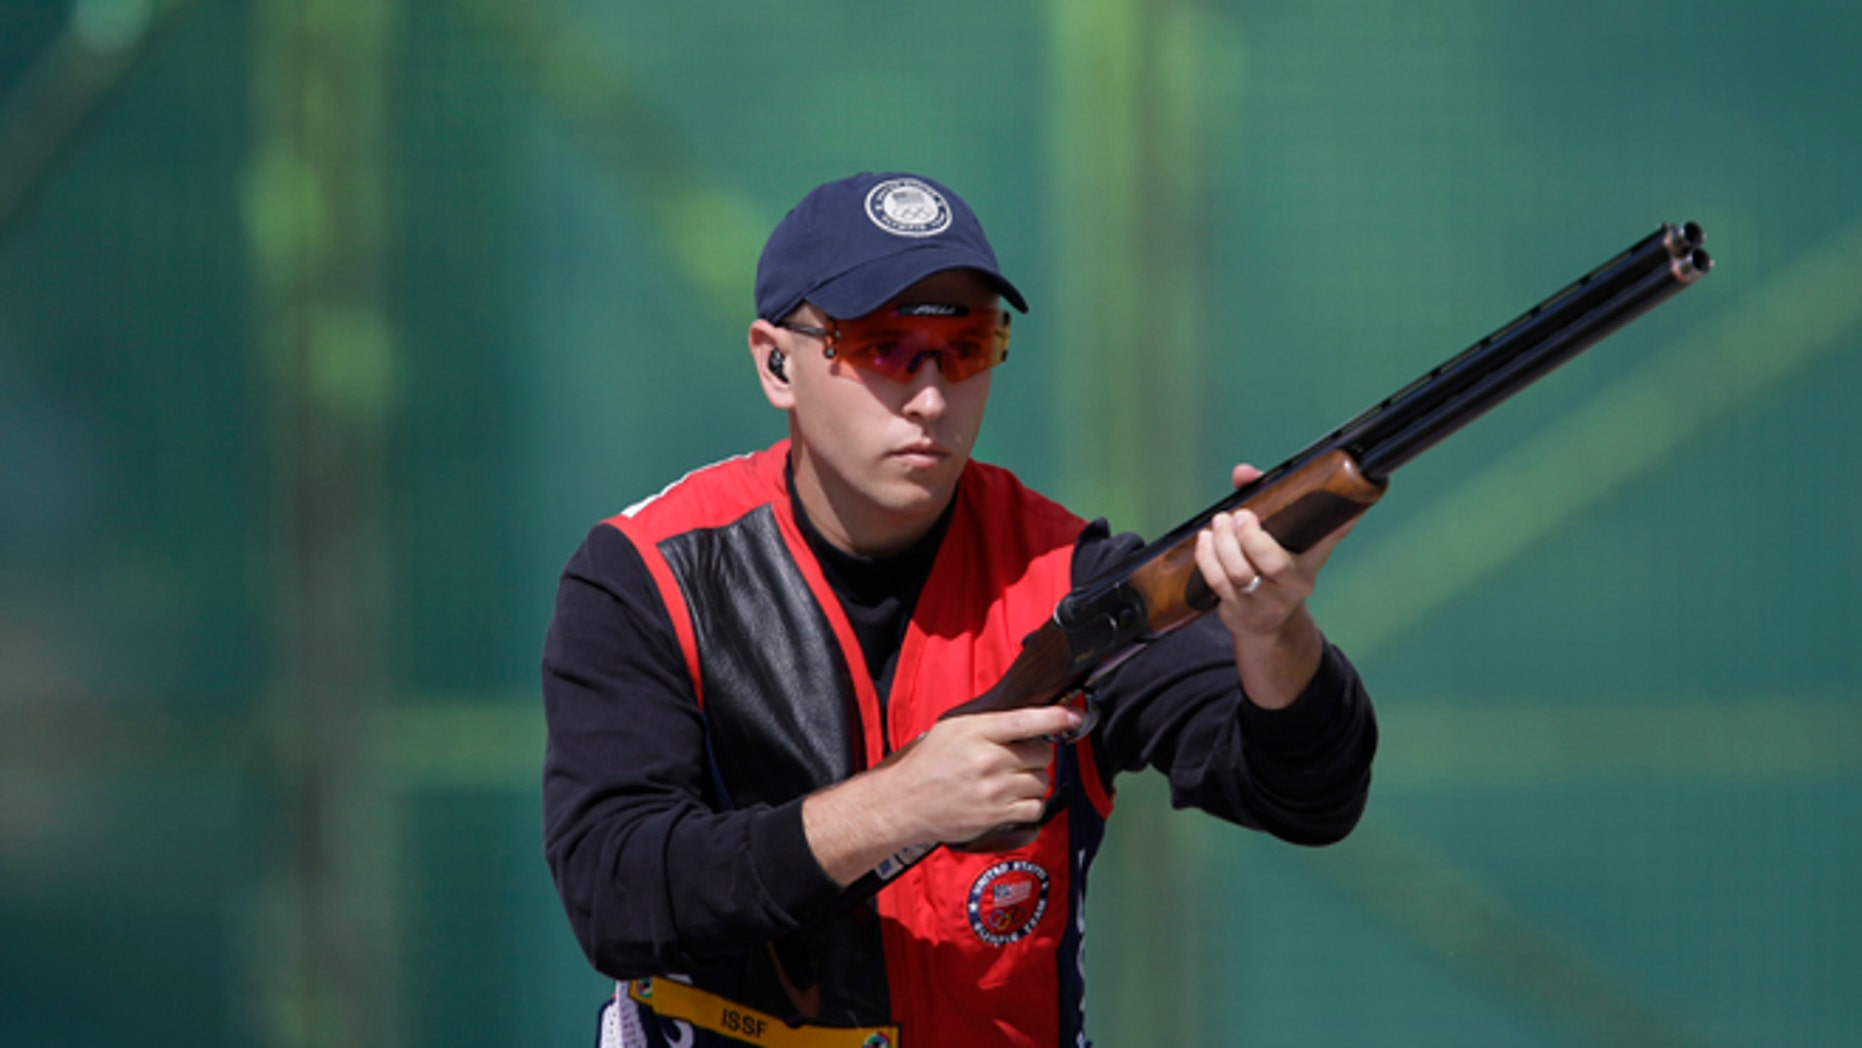 July 30, 2012: United States of America's Vincent Hancock prepares to shoot during the first day of qualifiers for the men's skeet event at the 2012 Summer Olympics in London.